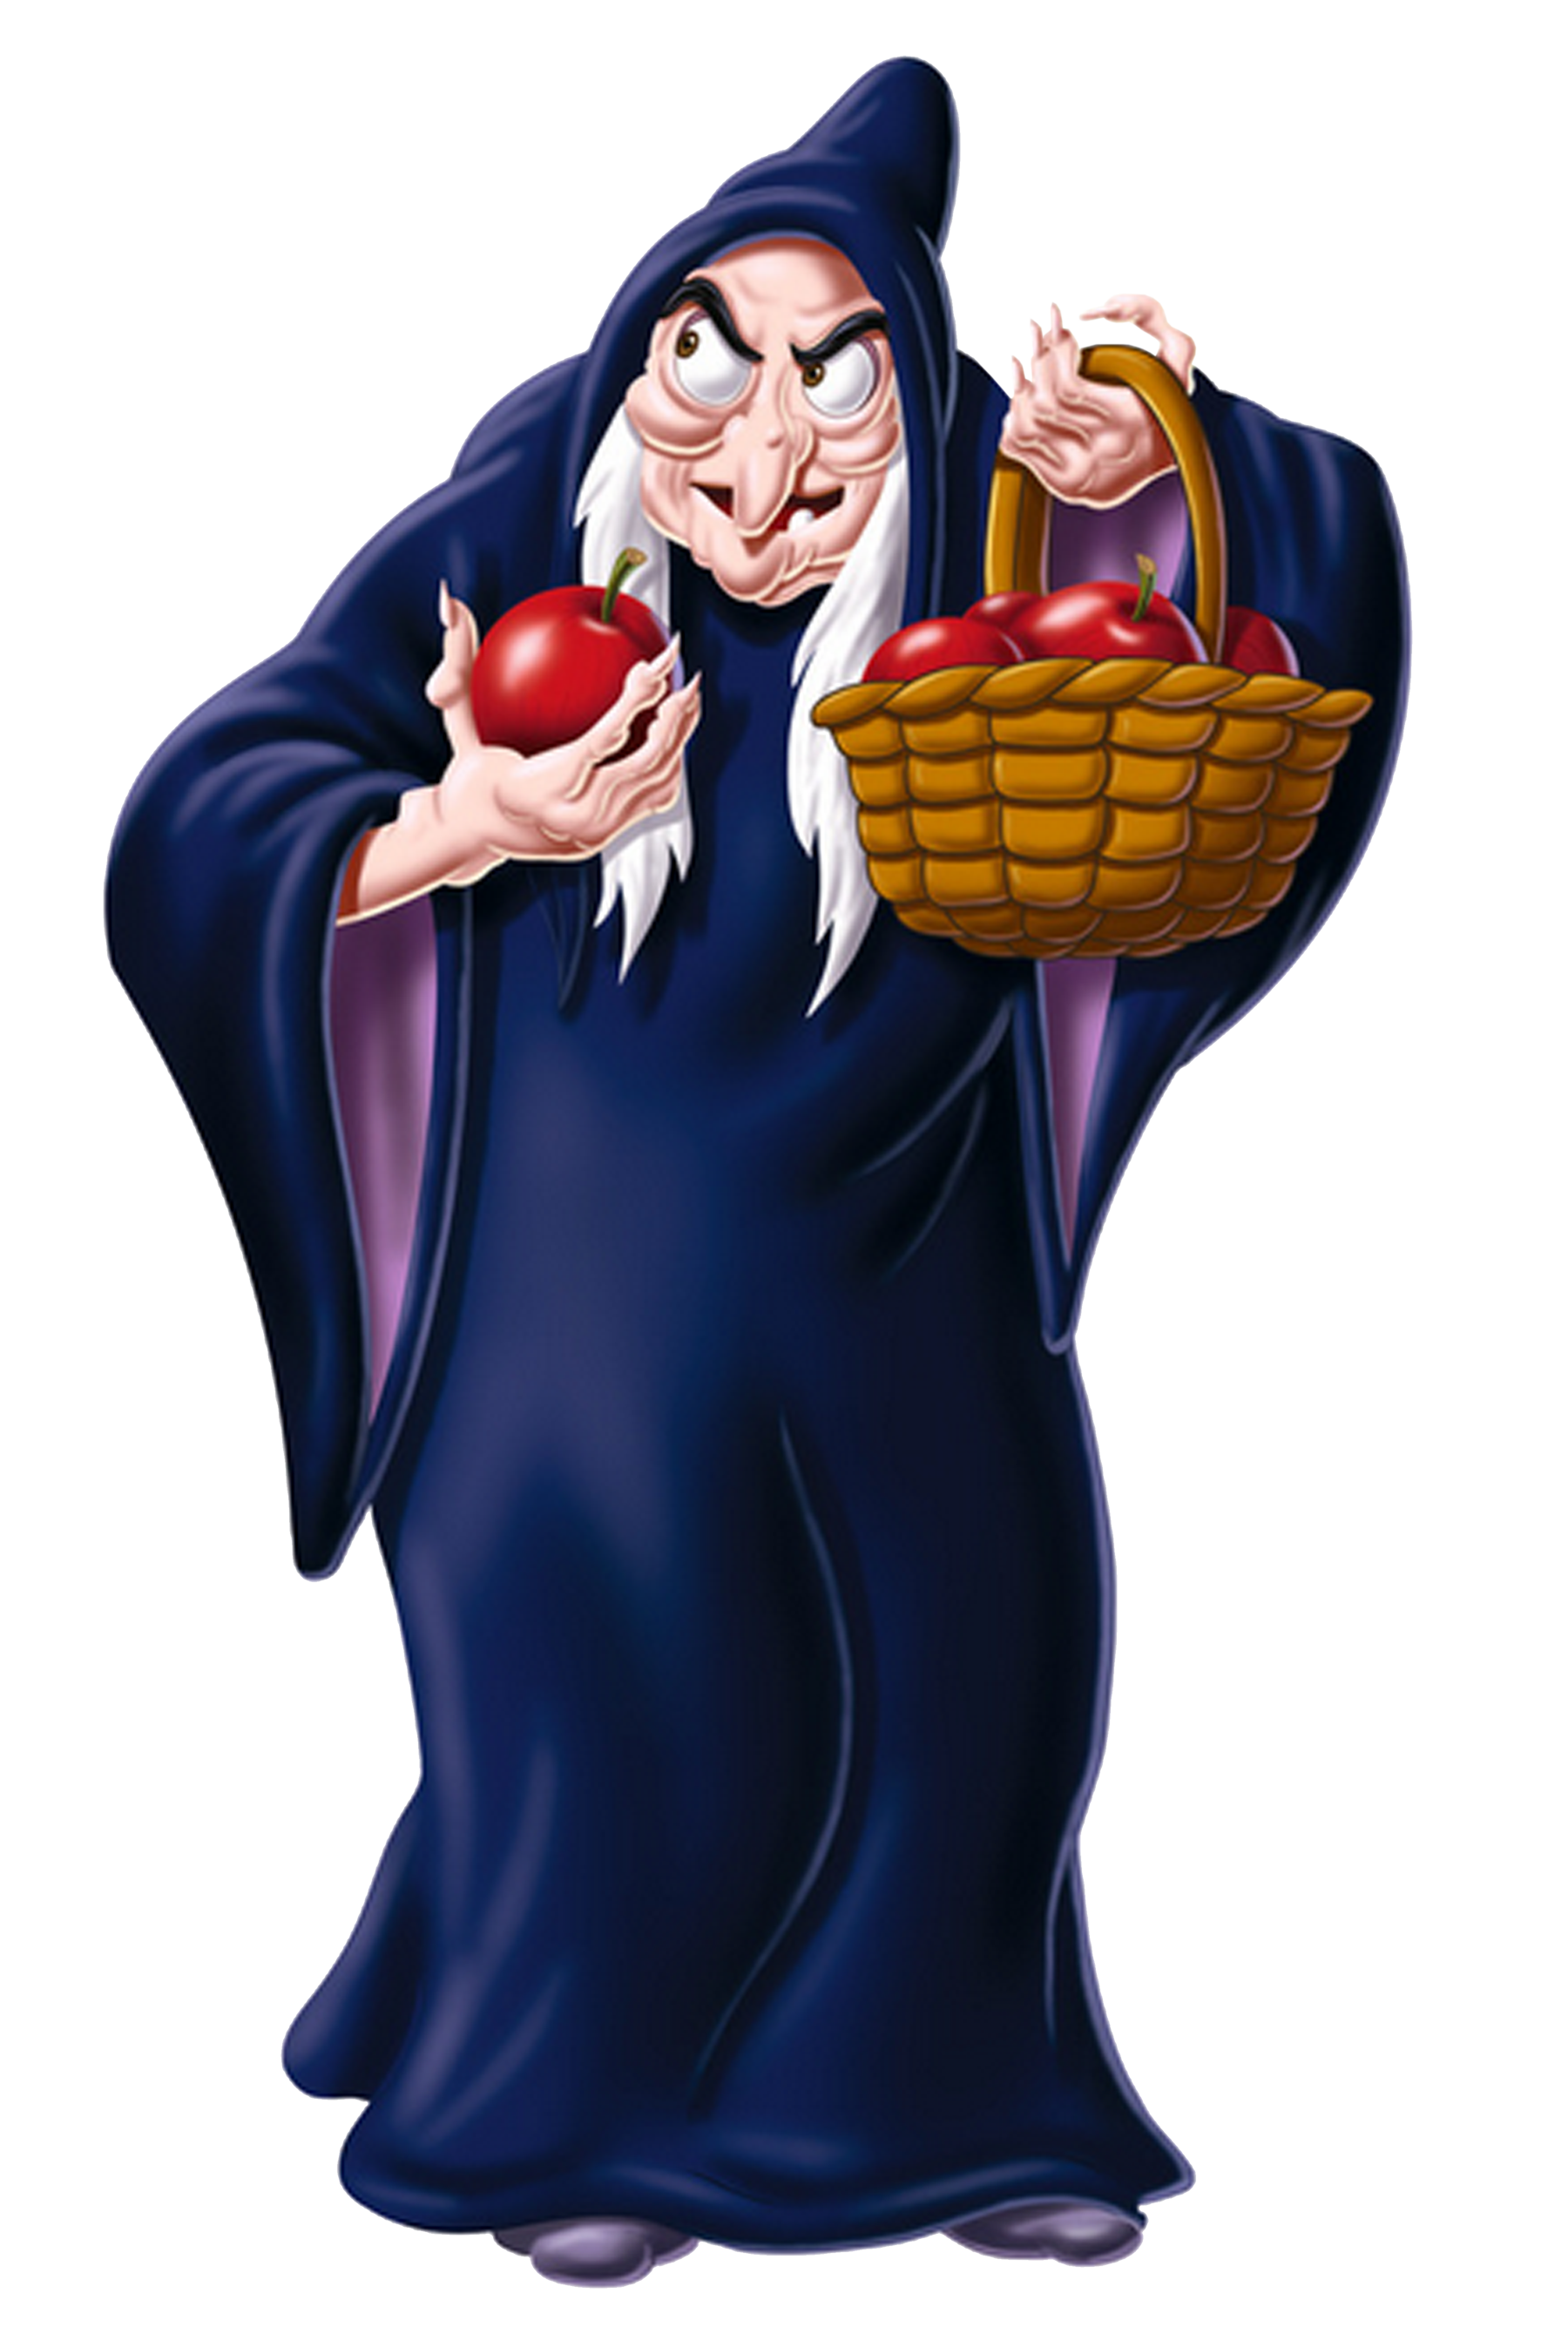 Hungry clipart beggar. Witch png image purepng